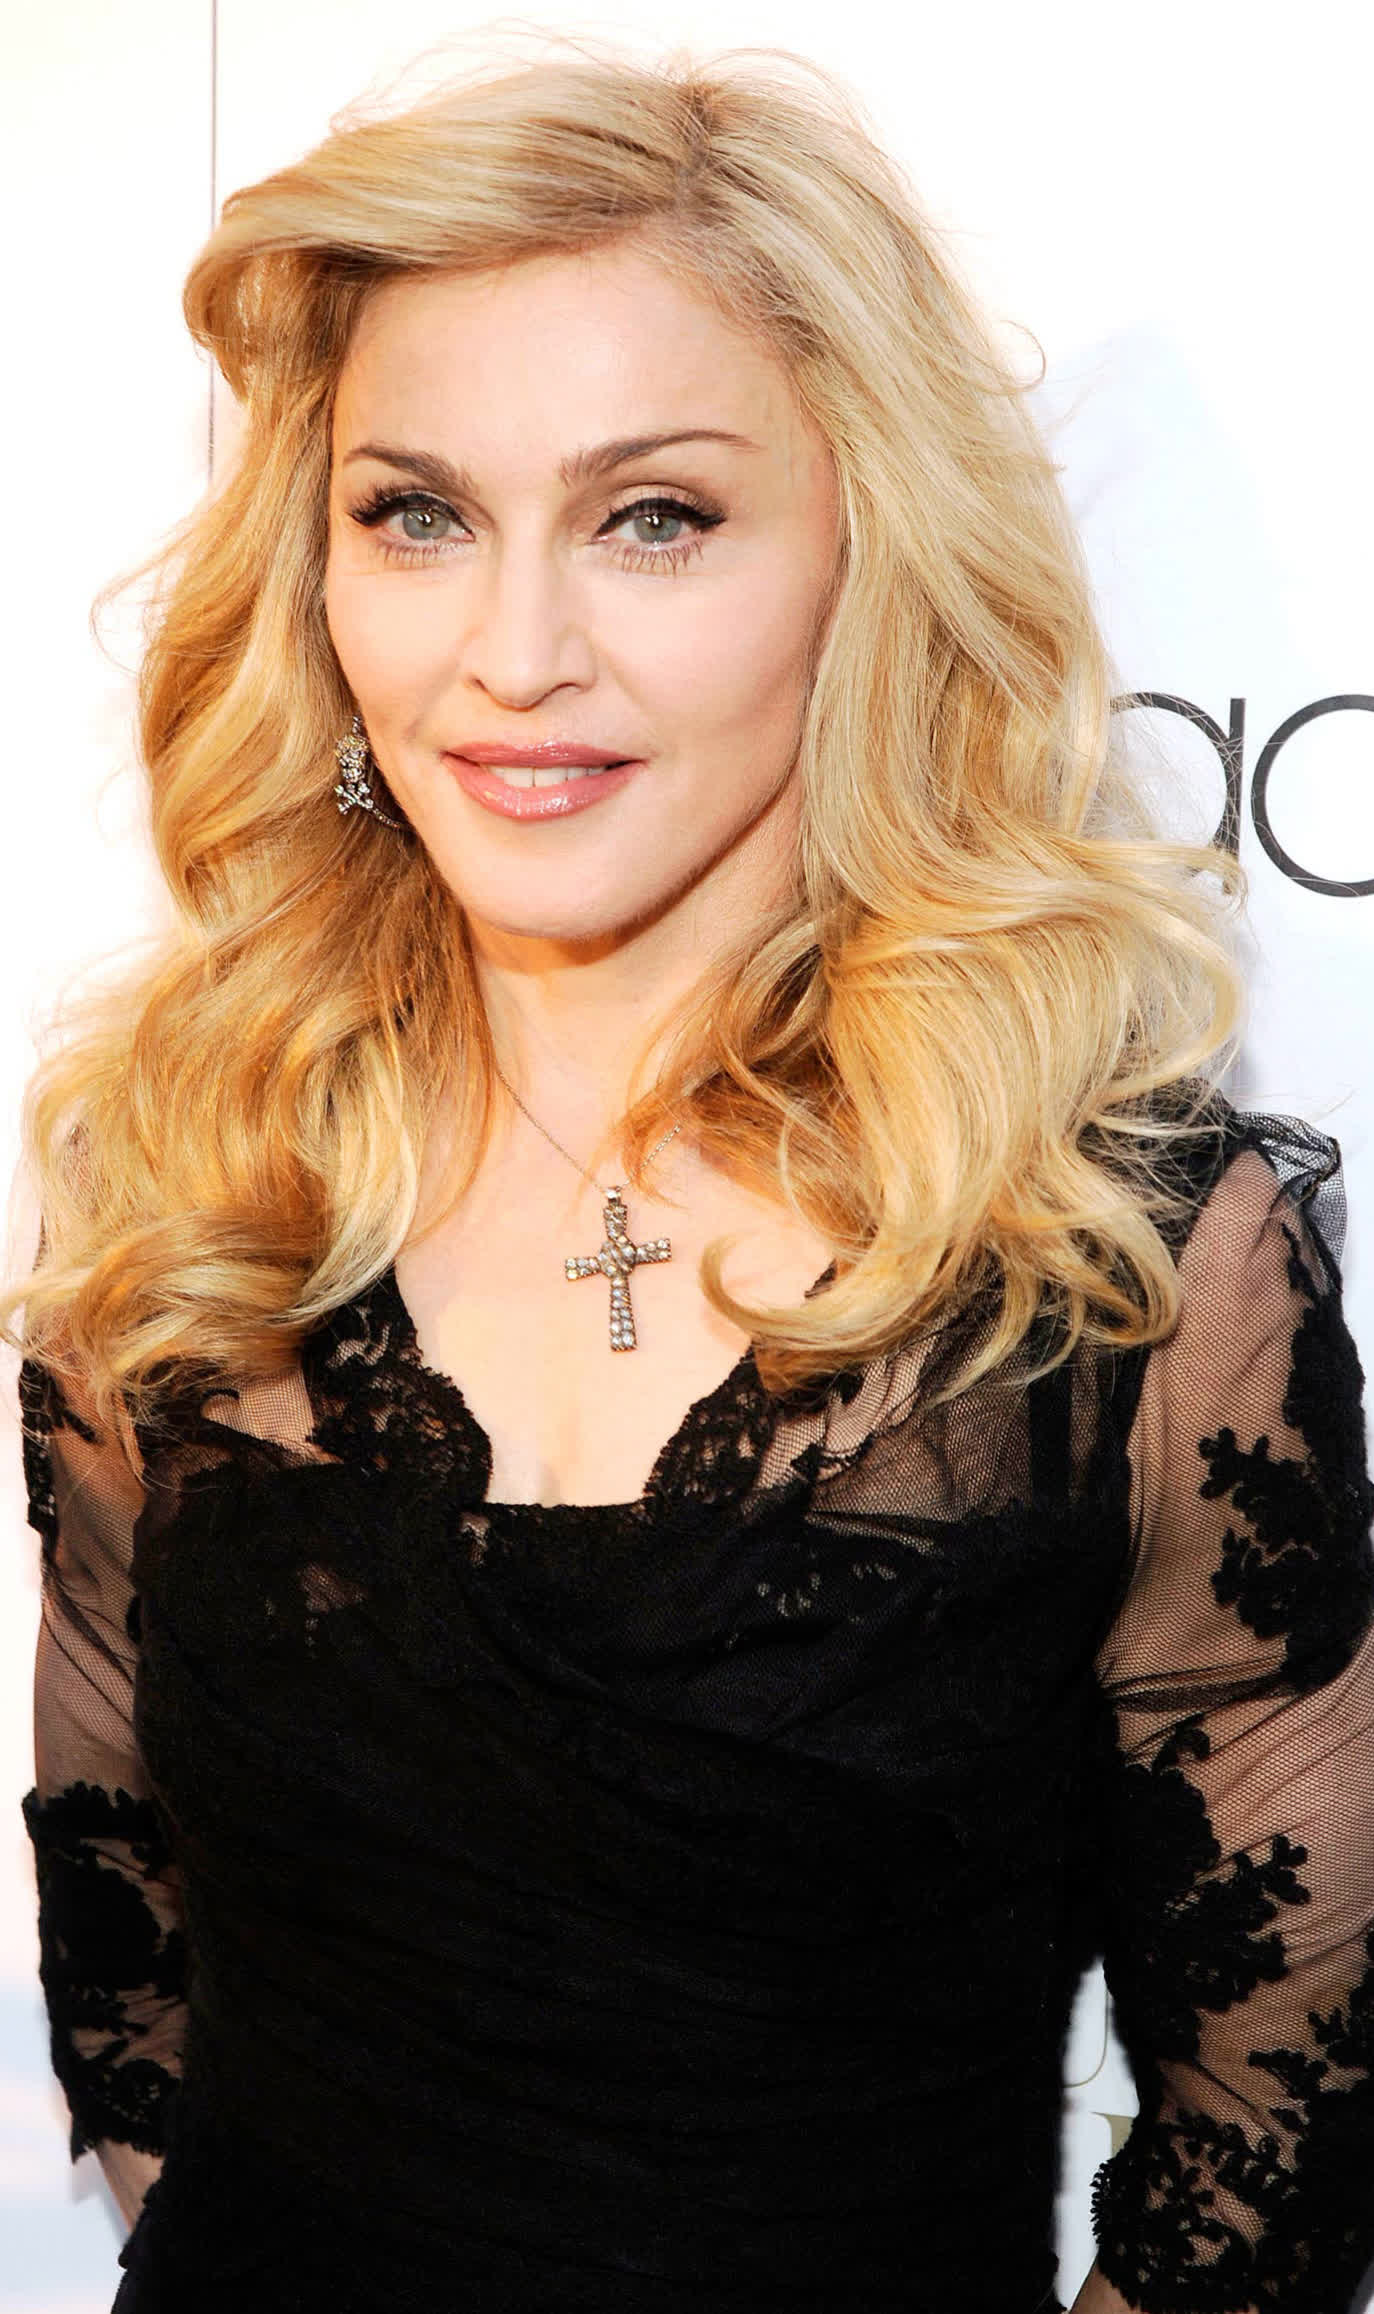 Madonna 40+ Photos Of Celebrities They Would Not Want You To See